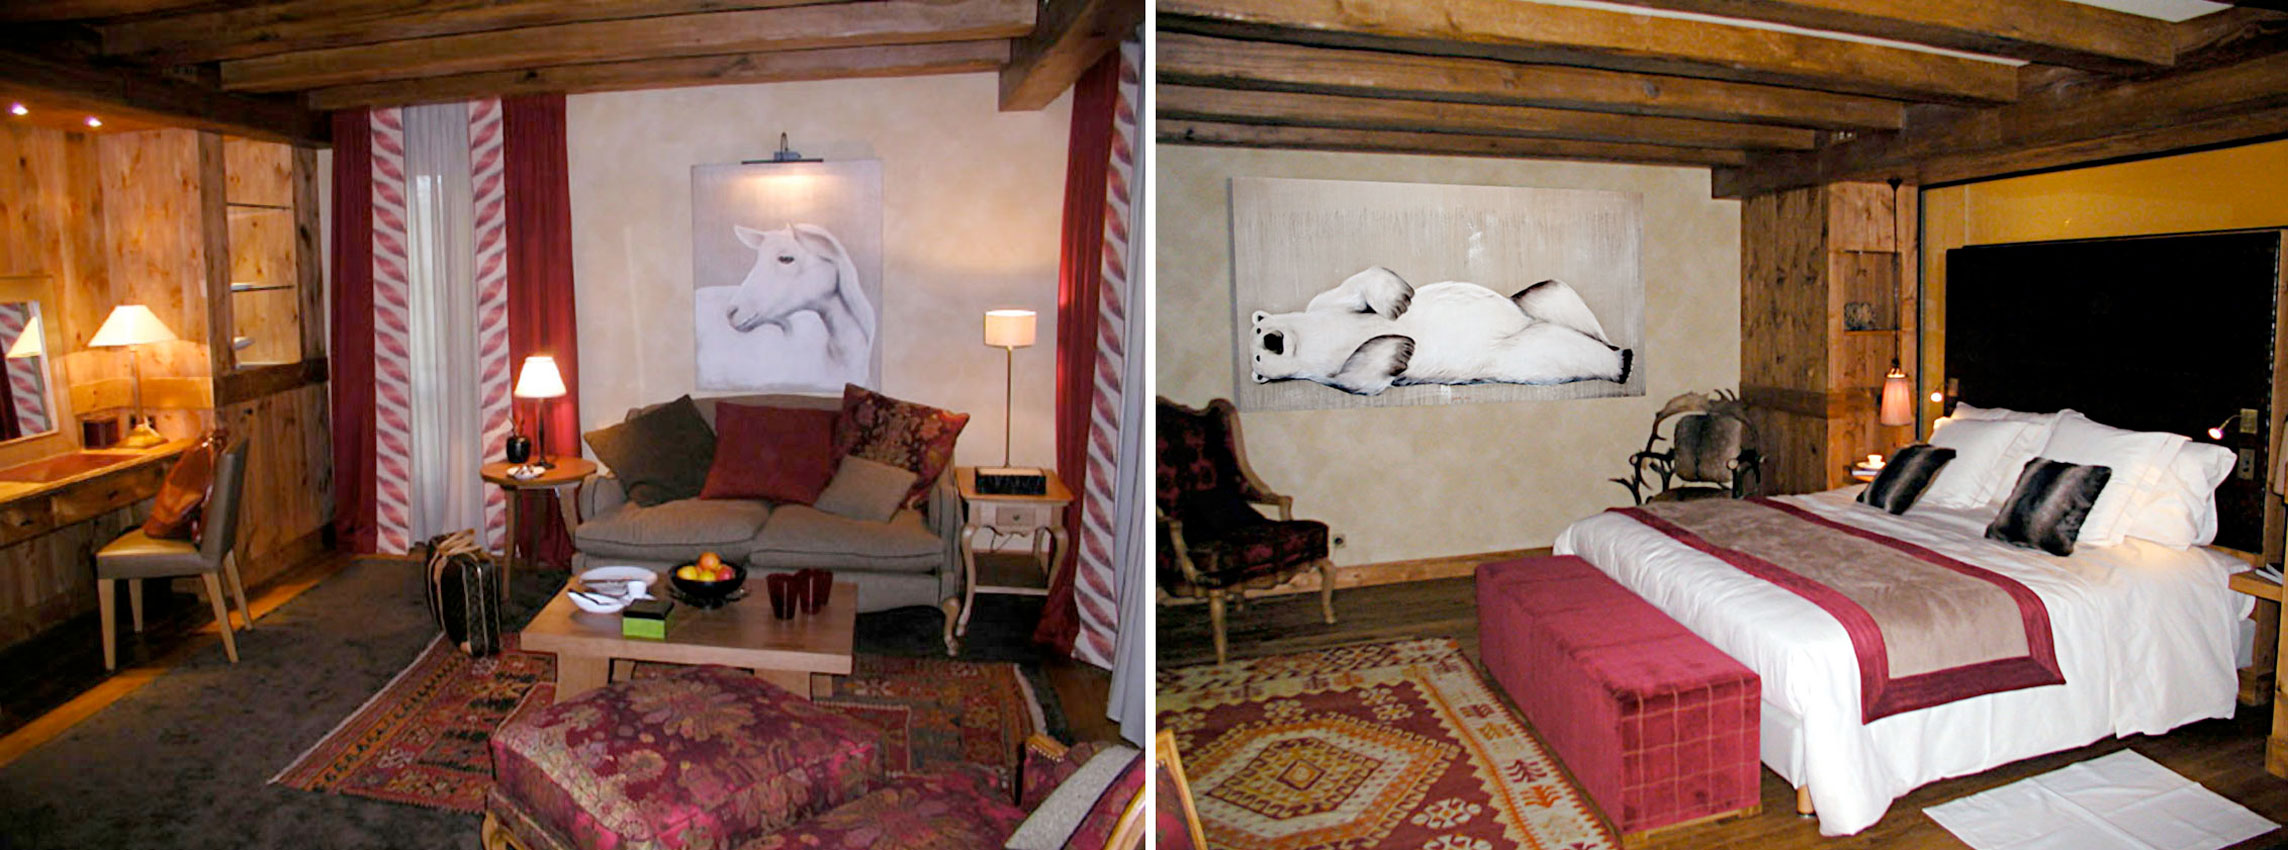 chambre cheval blanc HOTEL-CHEVAL-BLANC-COURCHEVEL-LUXURY-MOUNTAIN-RESIDENCE-FRENCH-ALPS-SKI Thierry Bisch painter animals painting art decoration hotel design interior luxury nature biodiversity conservation